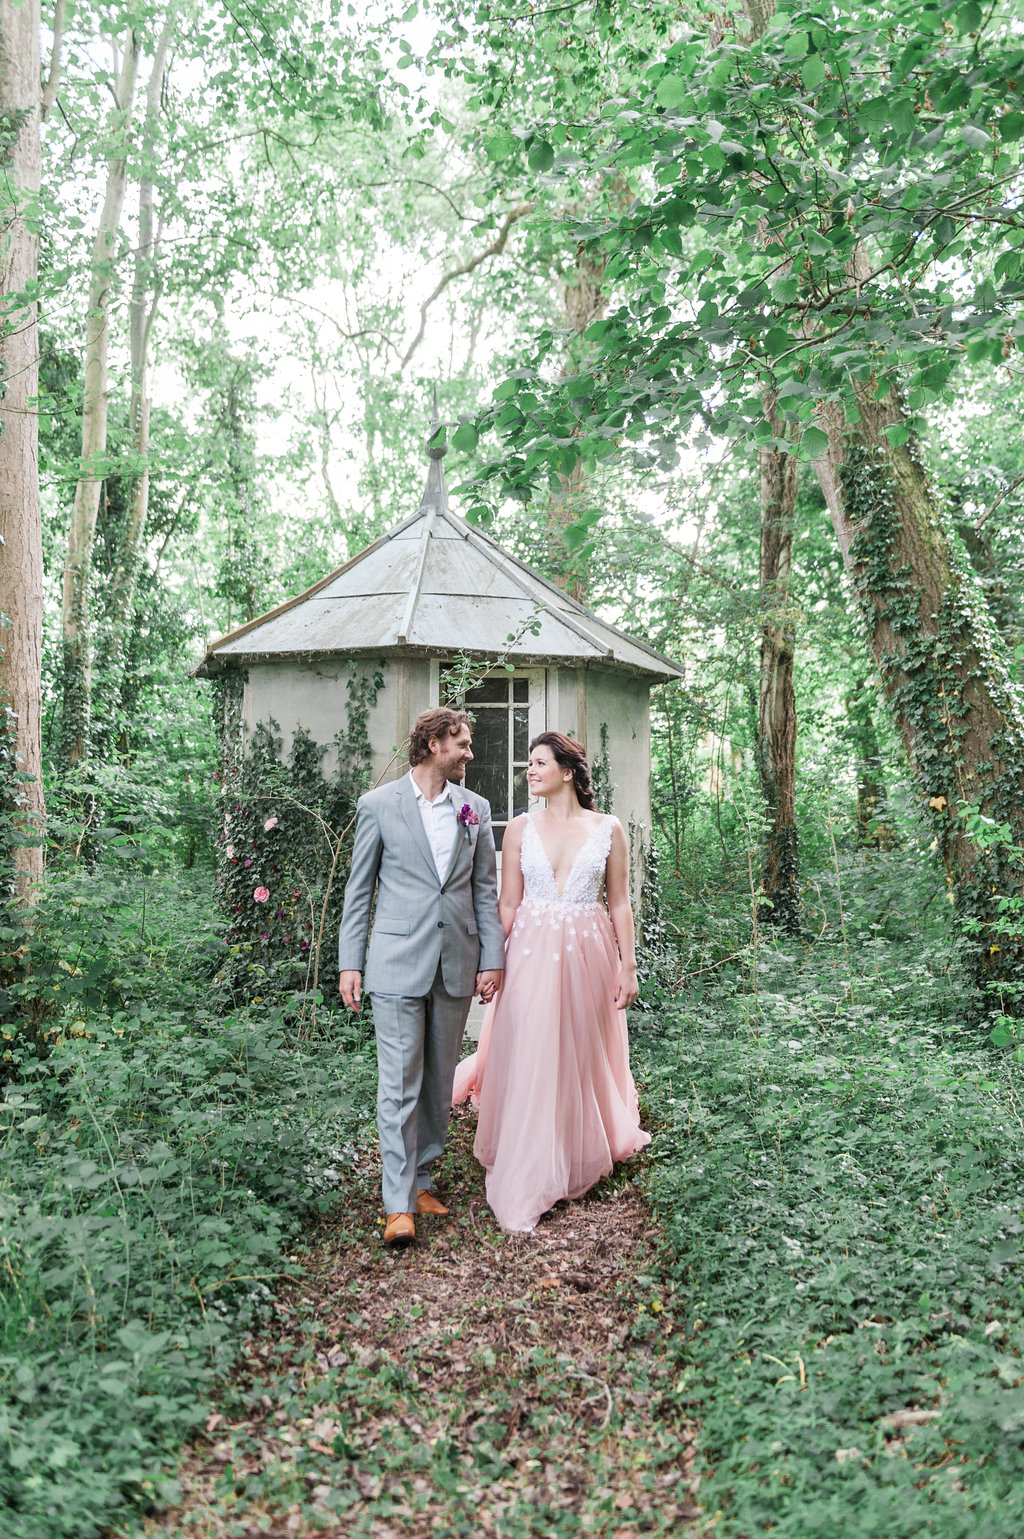 Dark Fairytale inspired Wedding - Wit Photography - Isle de L'Authie France - woods - pink wedding dress - Unielle Couture